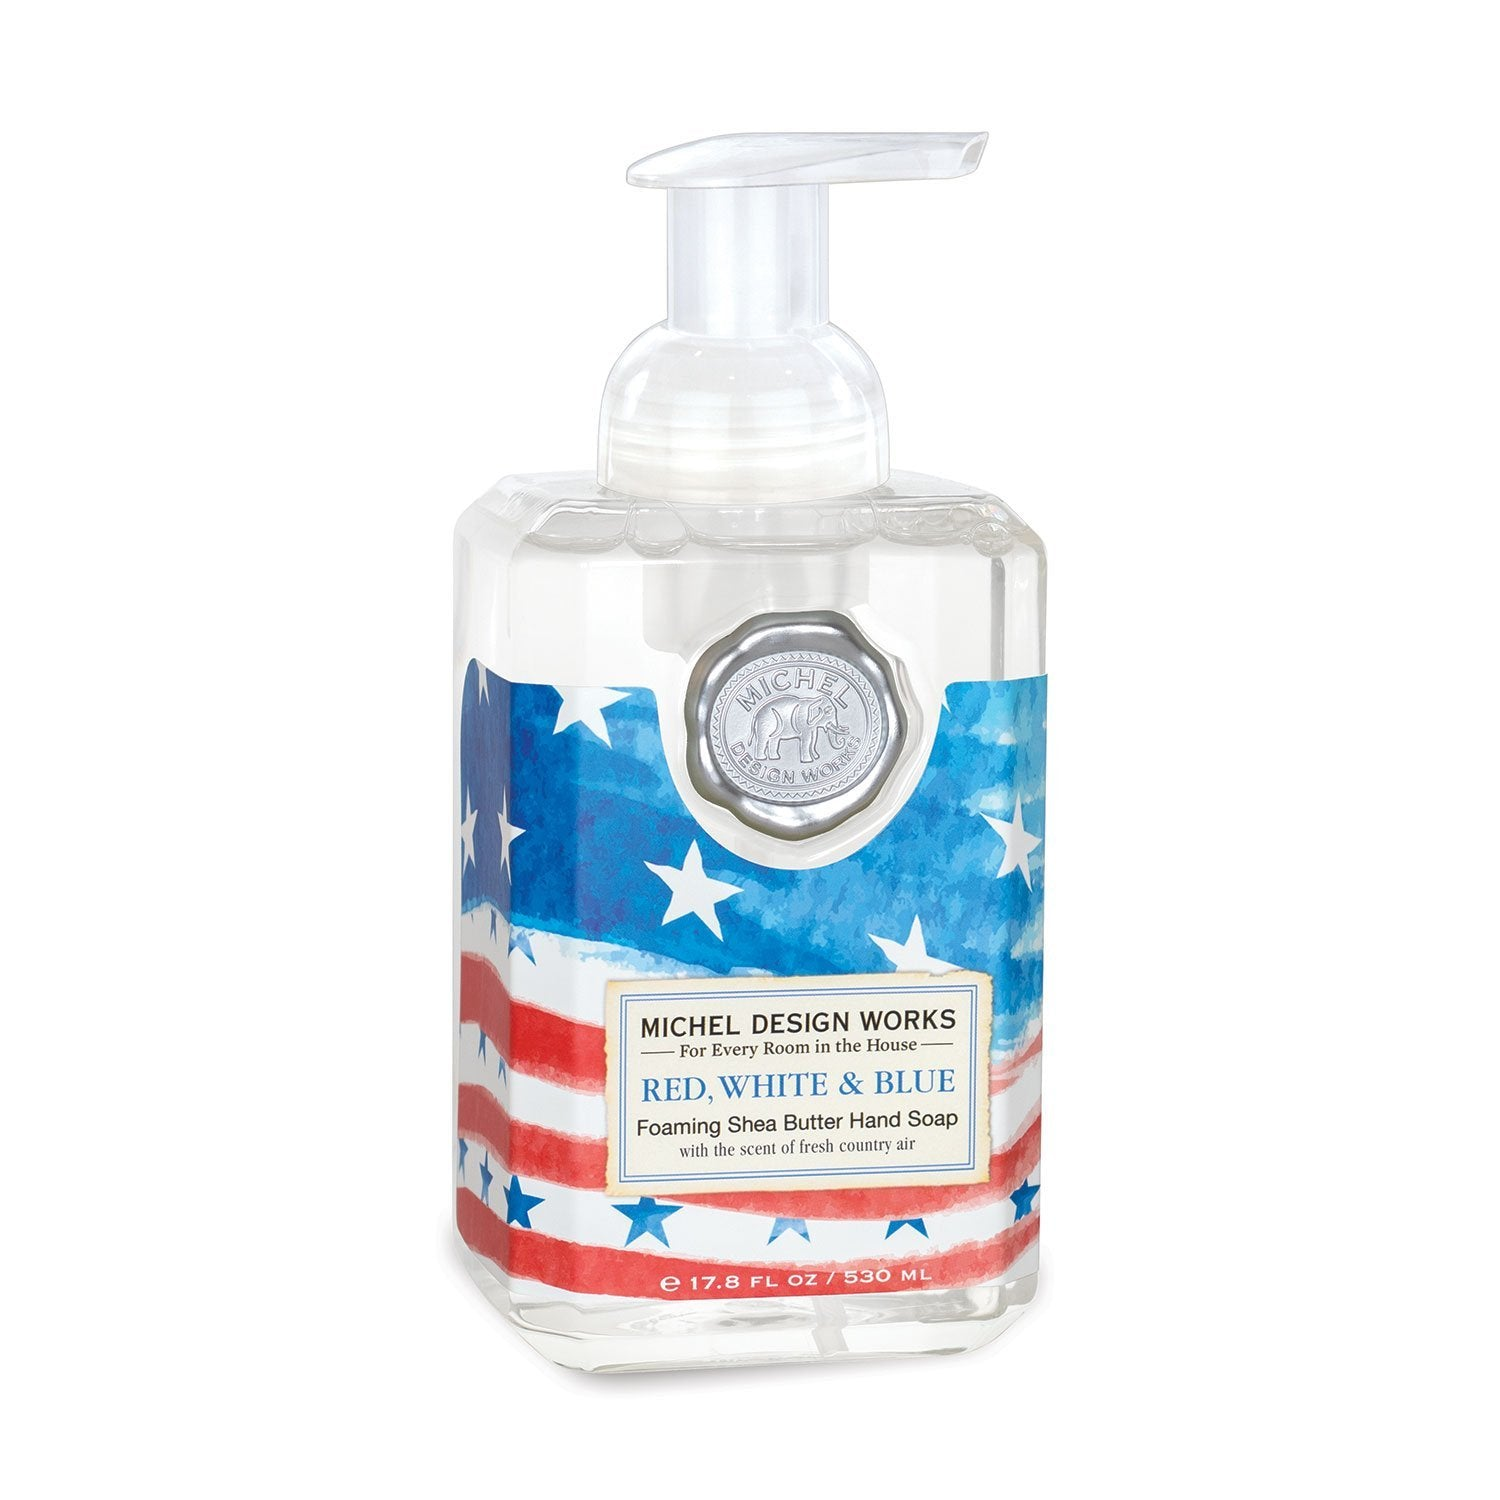 Foaming Hand Soap | Red, White & Blue